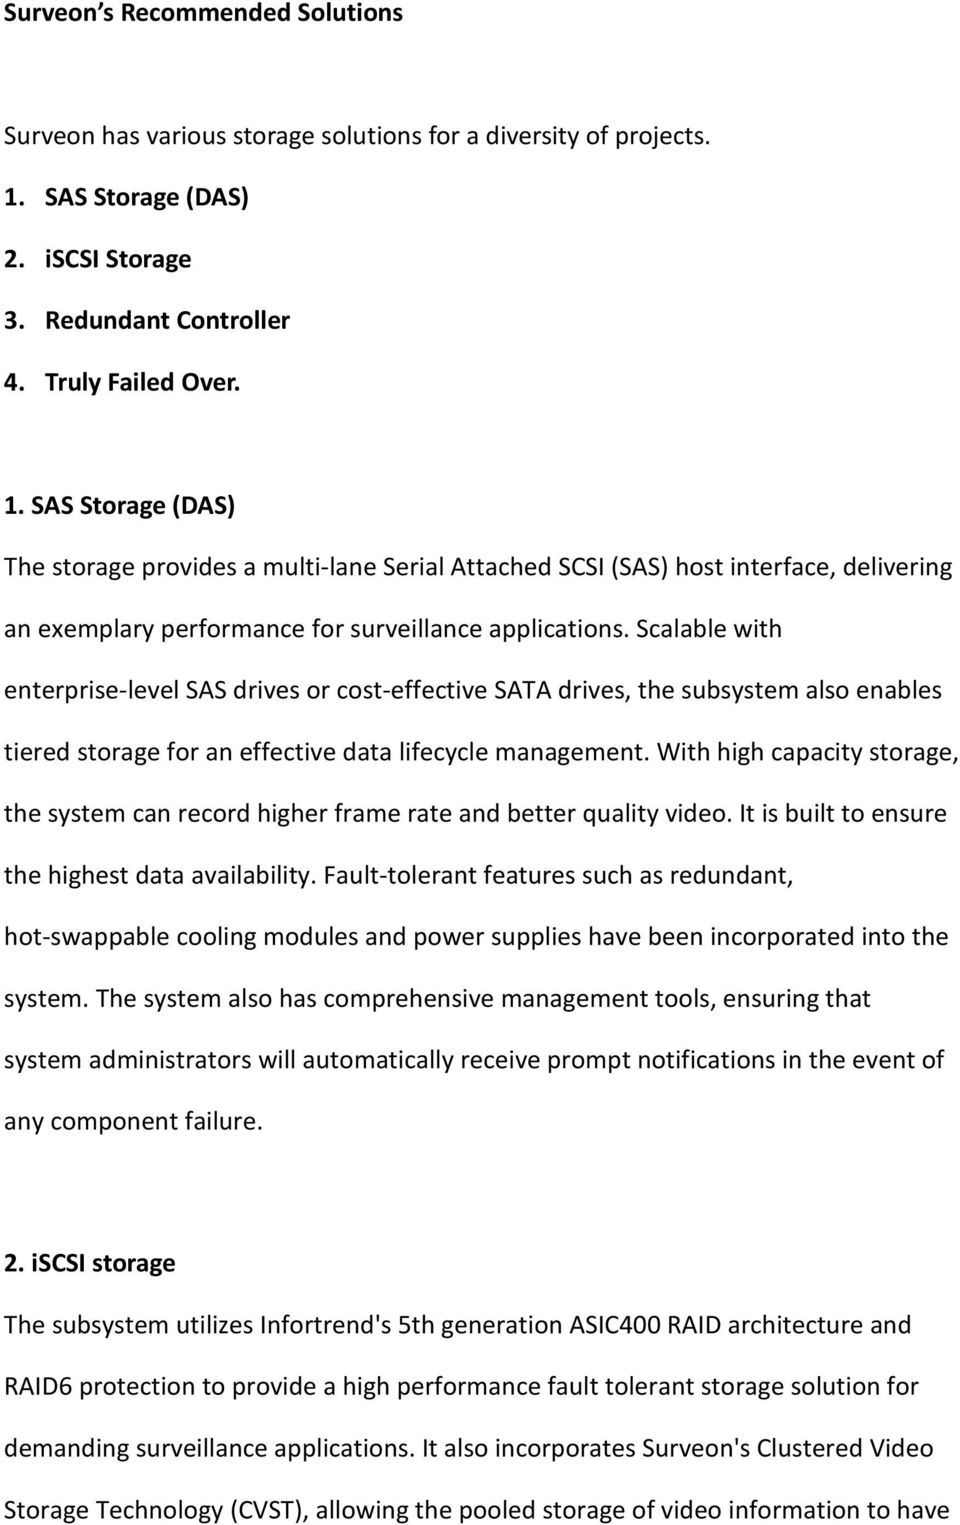 SAS Storage (DAS) The storage provides a multi-lane Serial Attached SCSI (SAS) host interface, delivering an exemplary performance for surveillance applications.